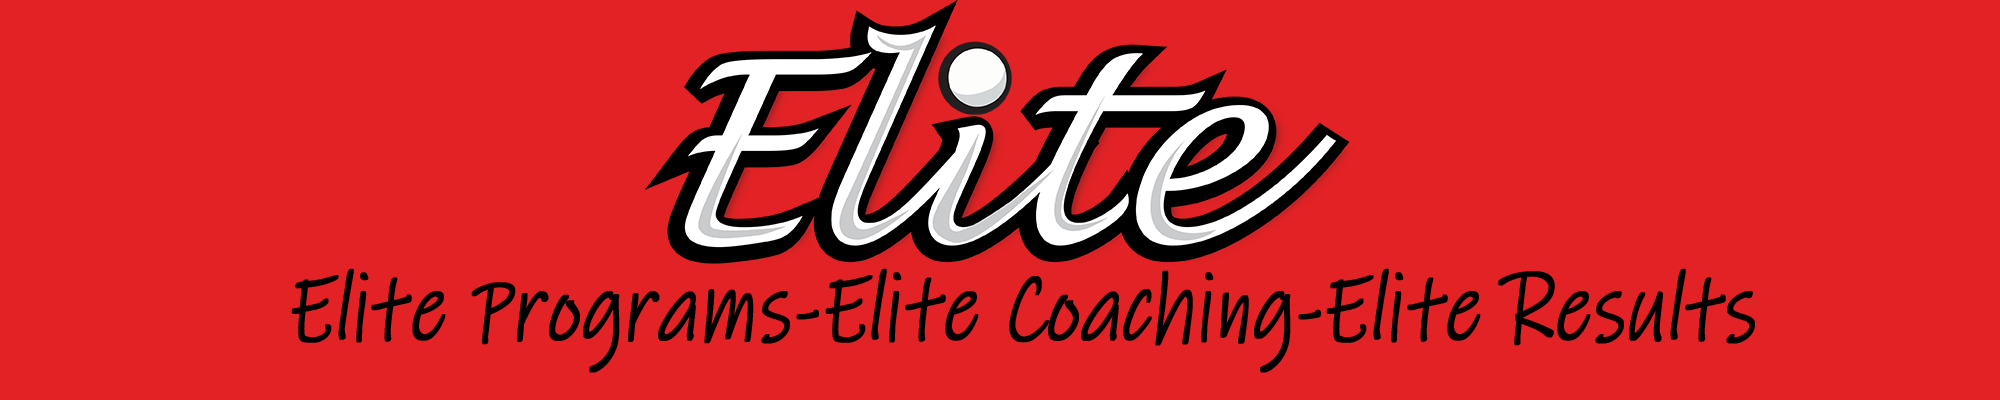 Cincy Elite Baseball Academy